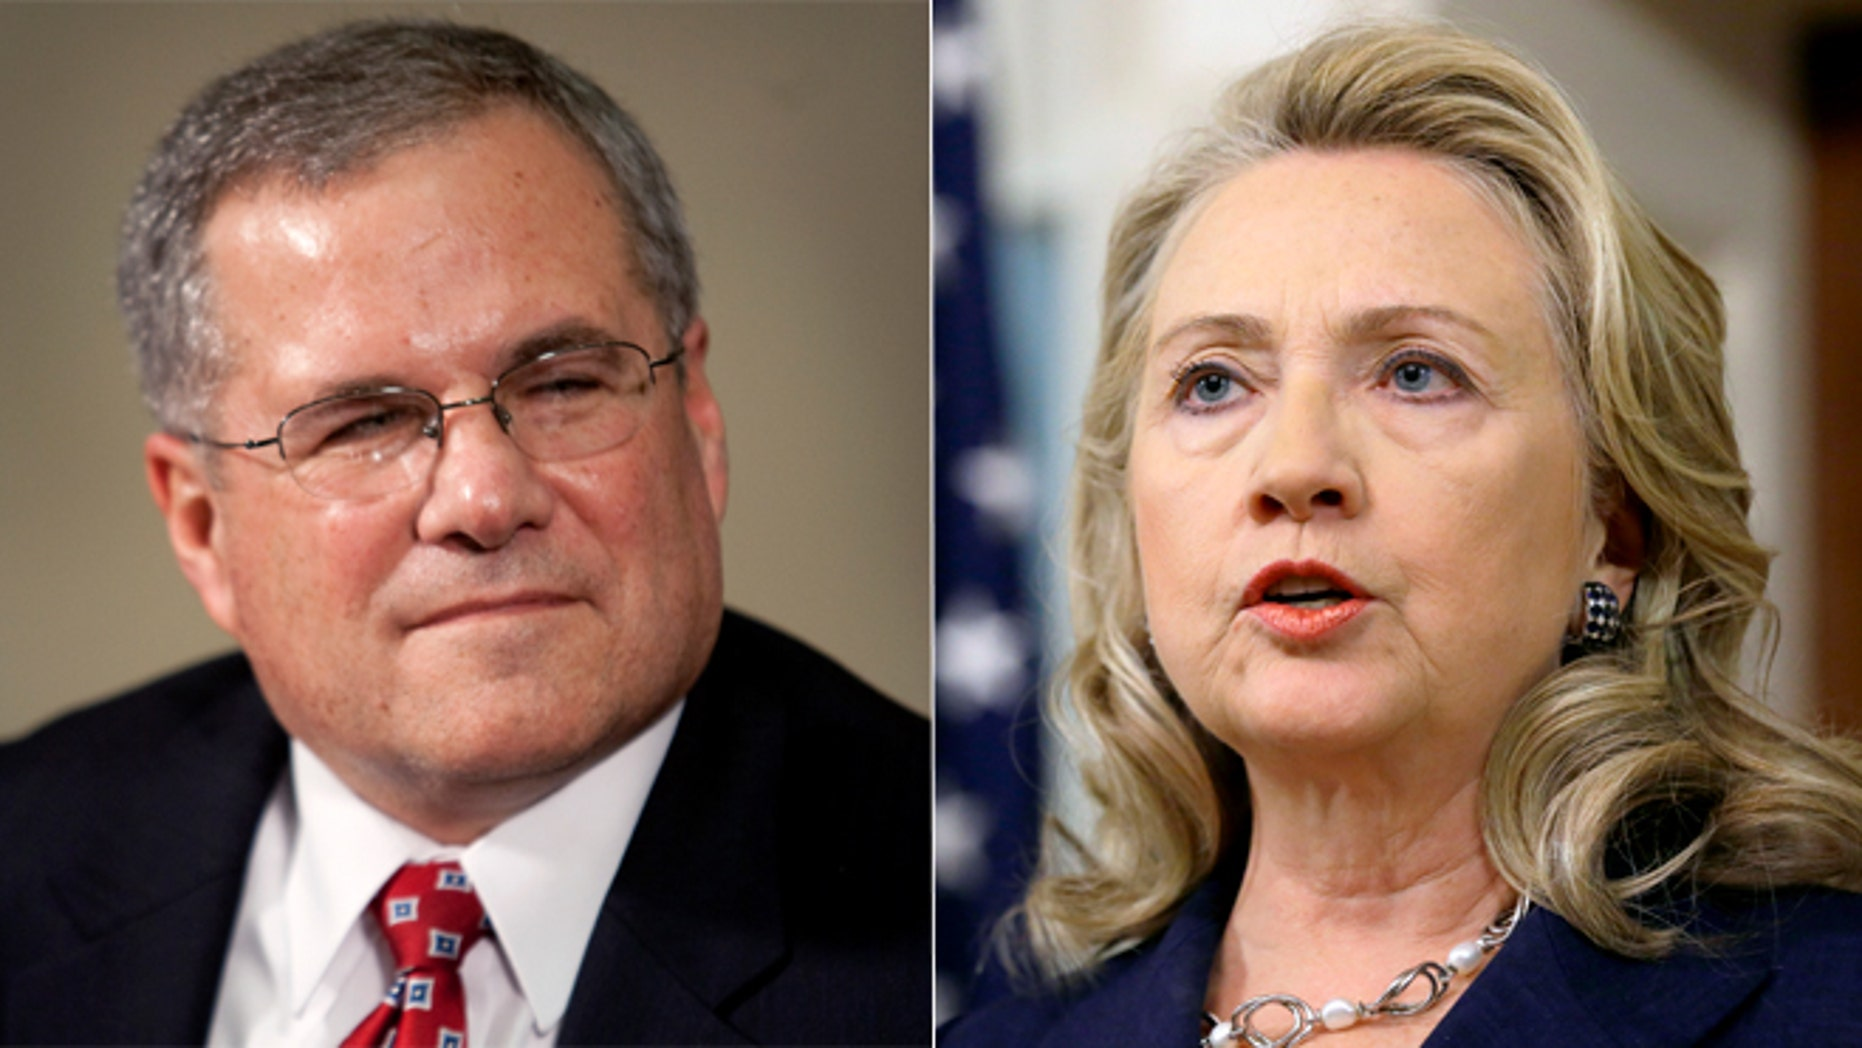 Shown here are Scott Gration, former ambassador to Kenya, left, and former Secretary of State Hillary Clinton.